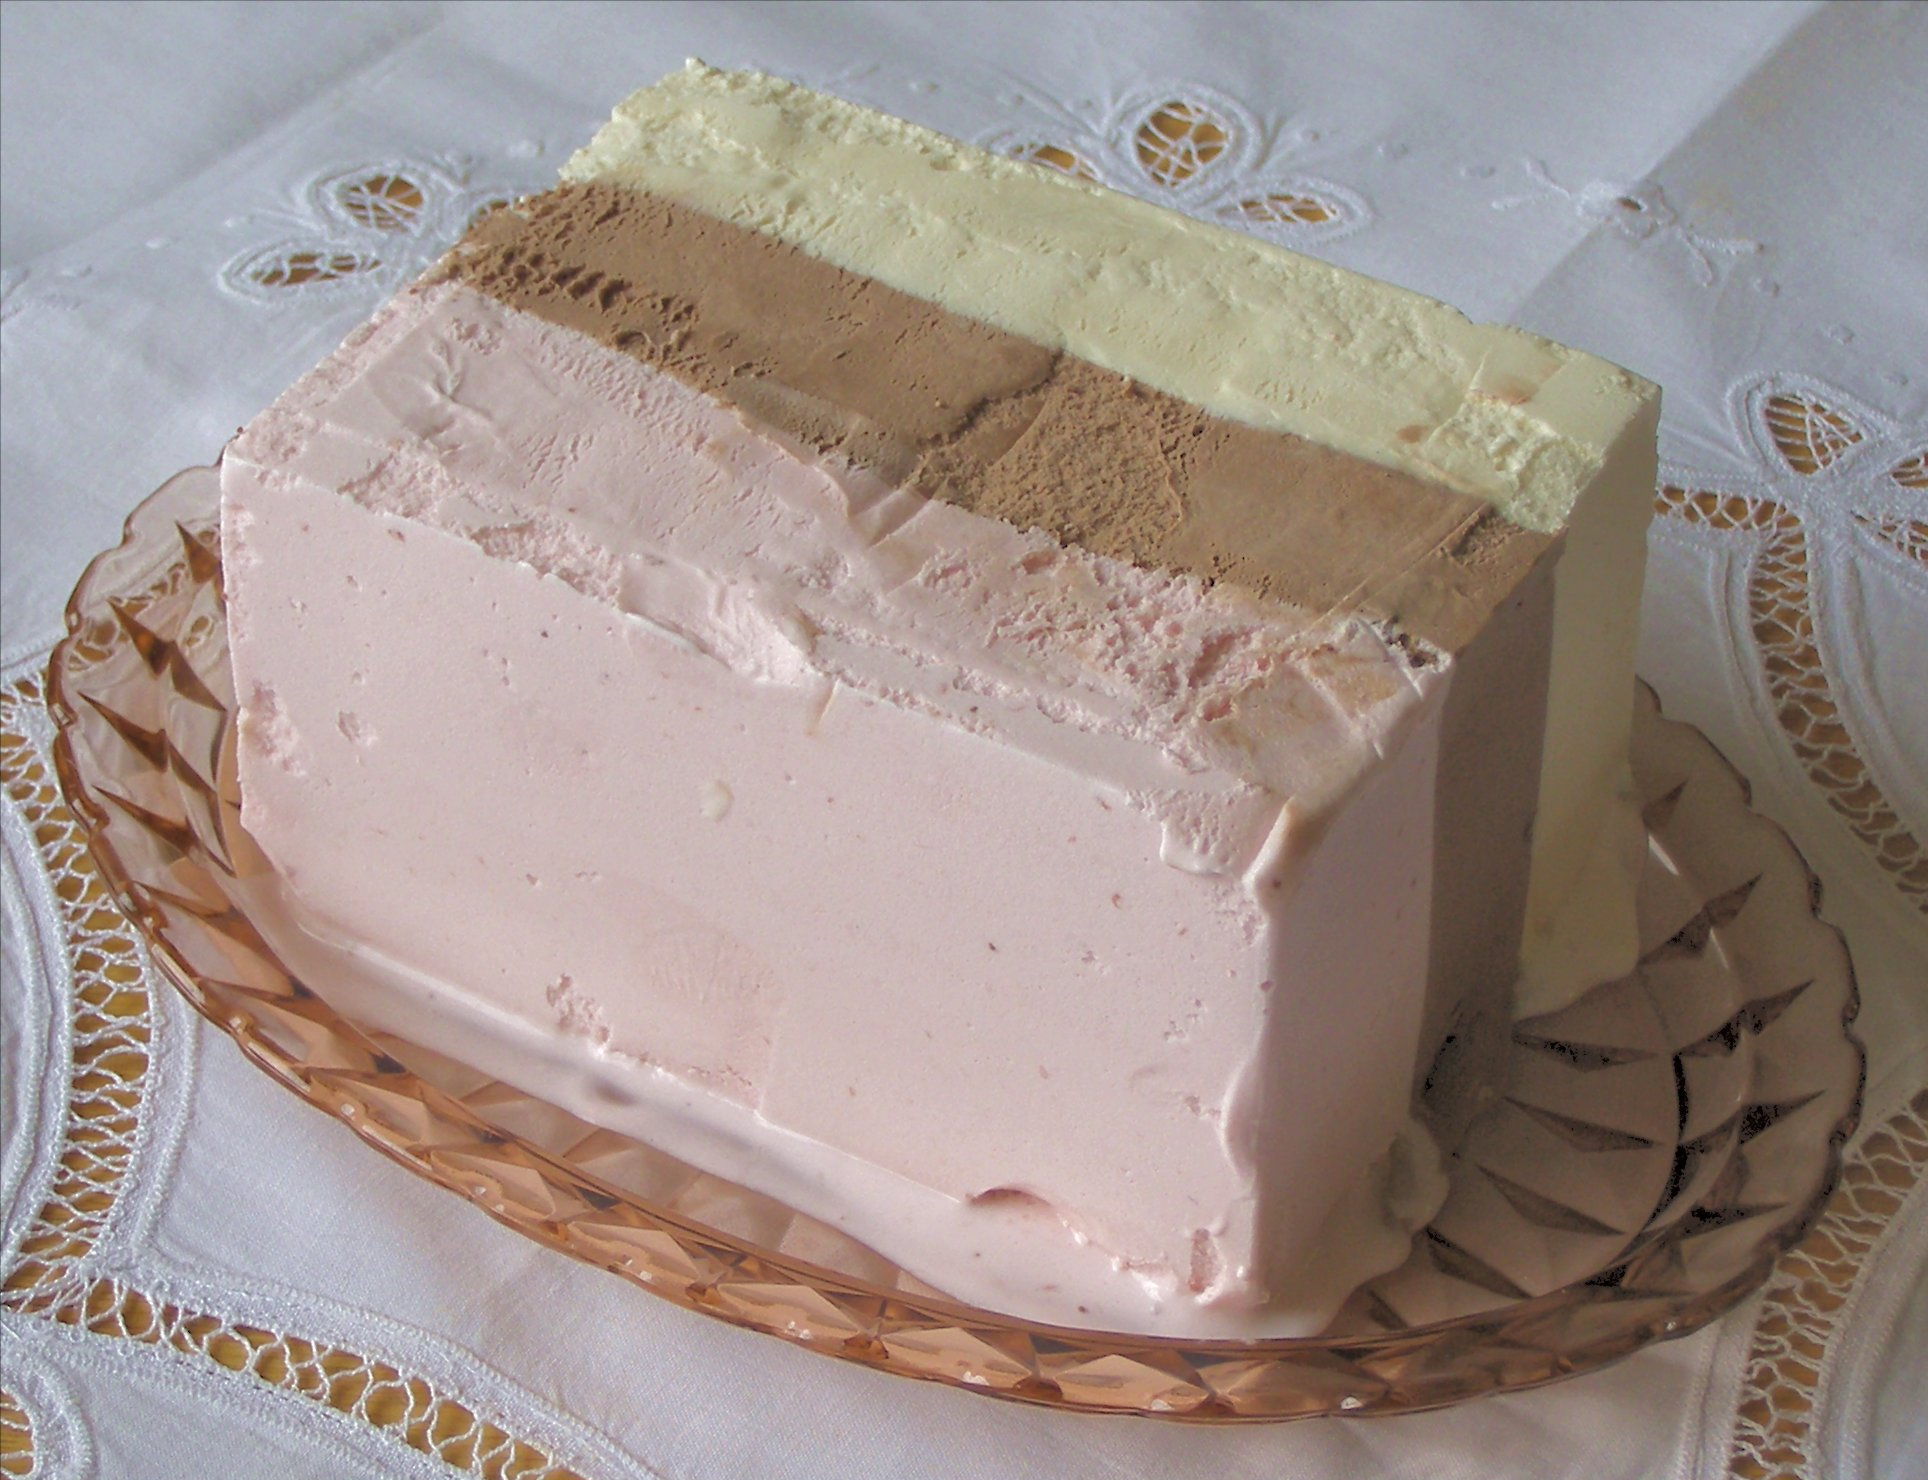 Neapolitan Ice Cream Wikipedia